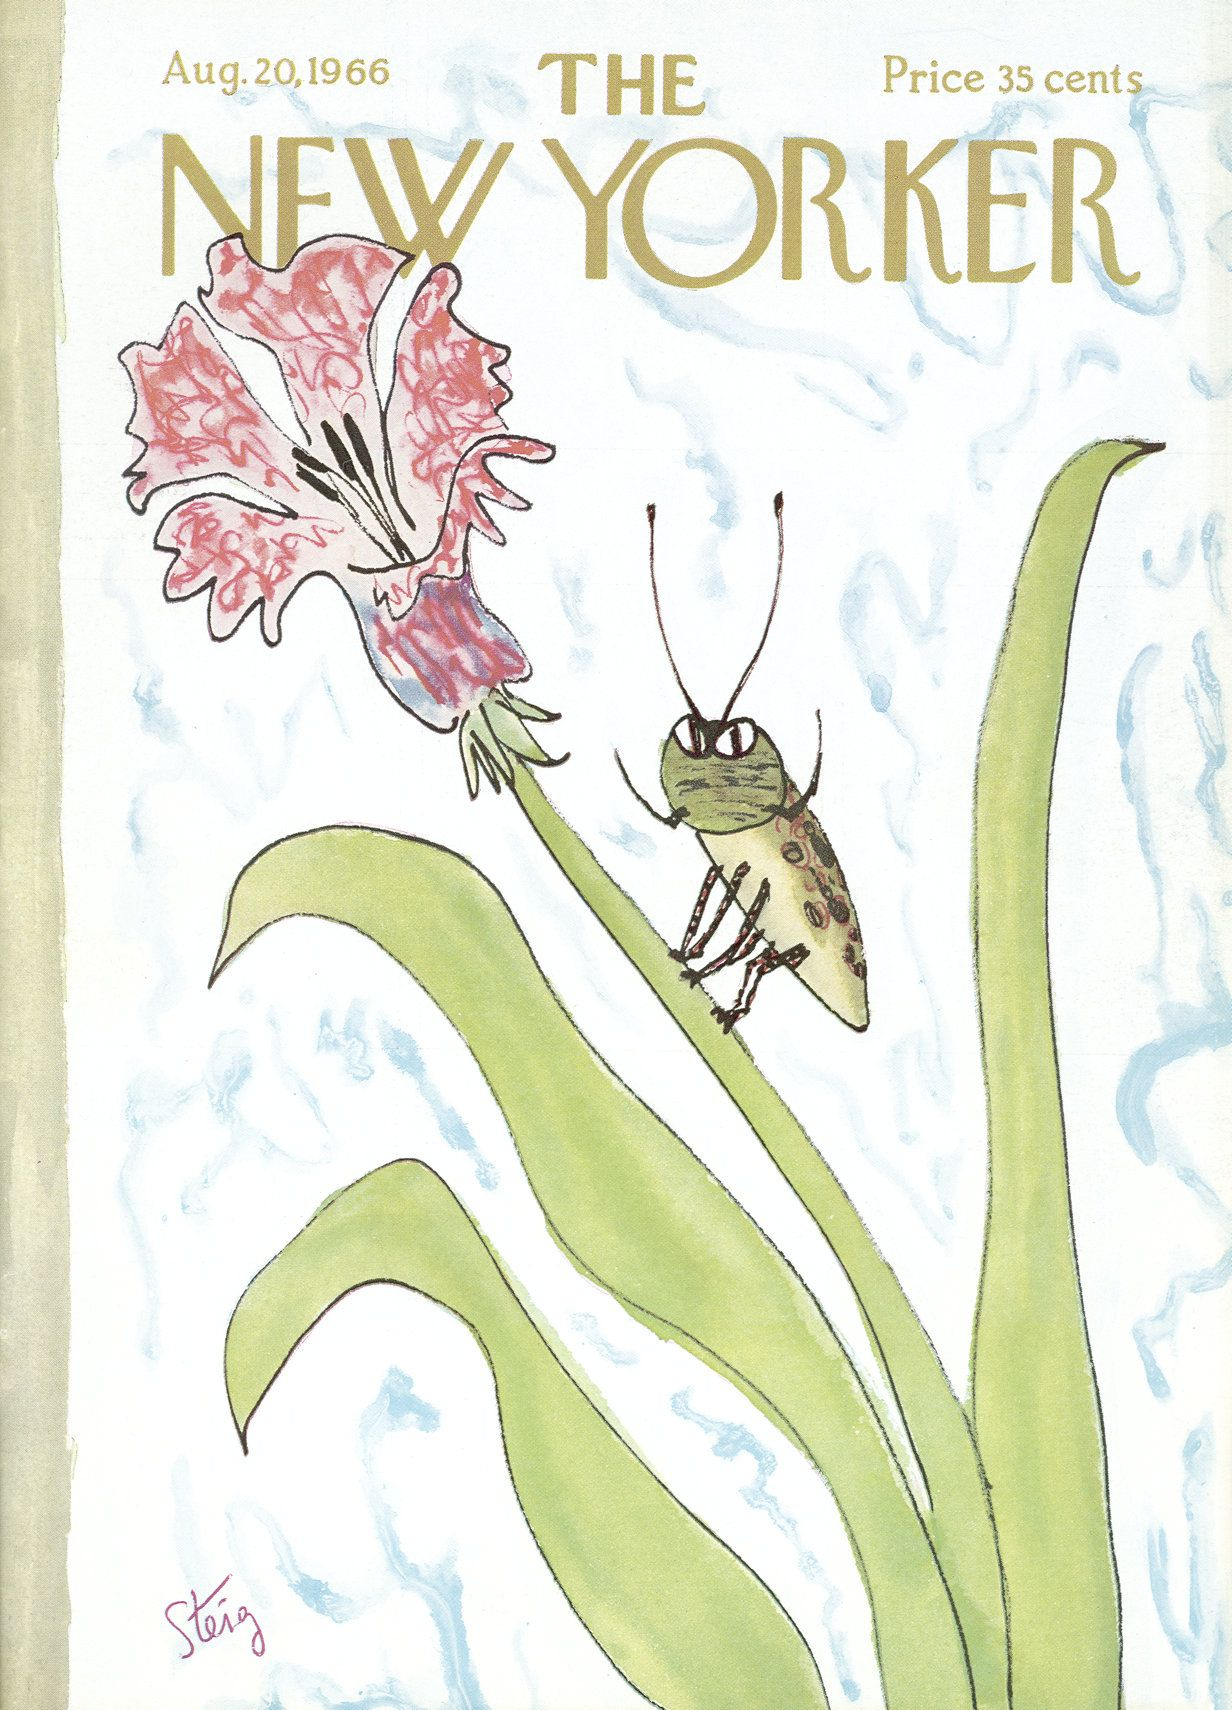 The New Yorker - Saturday, August 20, 1966 - Issue # 2166 - Vol. 42 - N° 26 - Cover by : William Steig